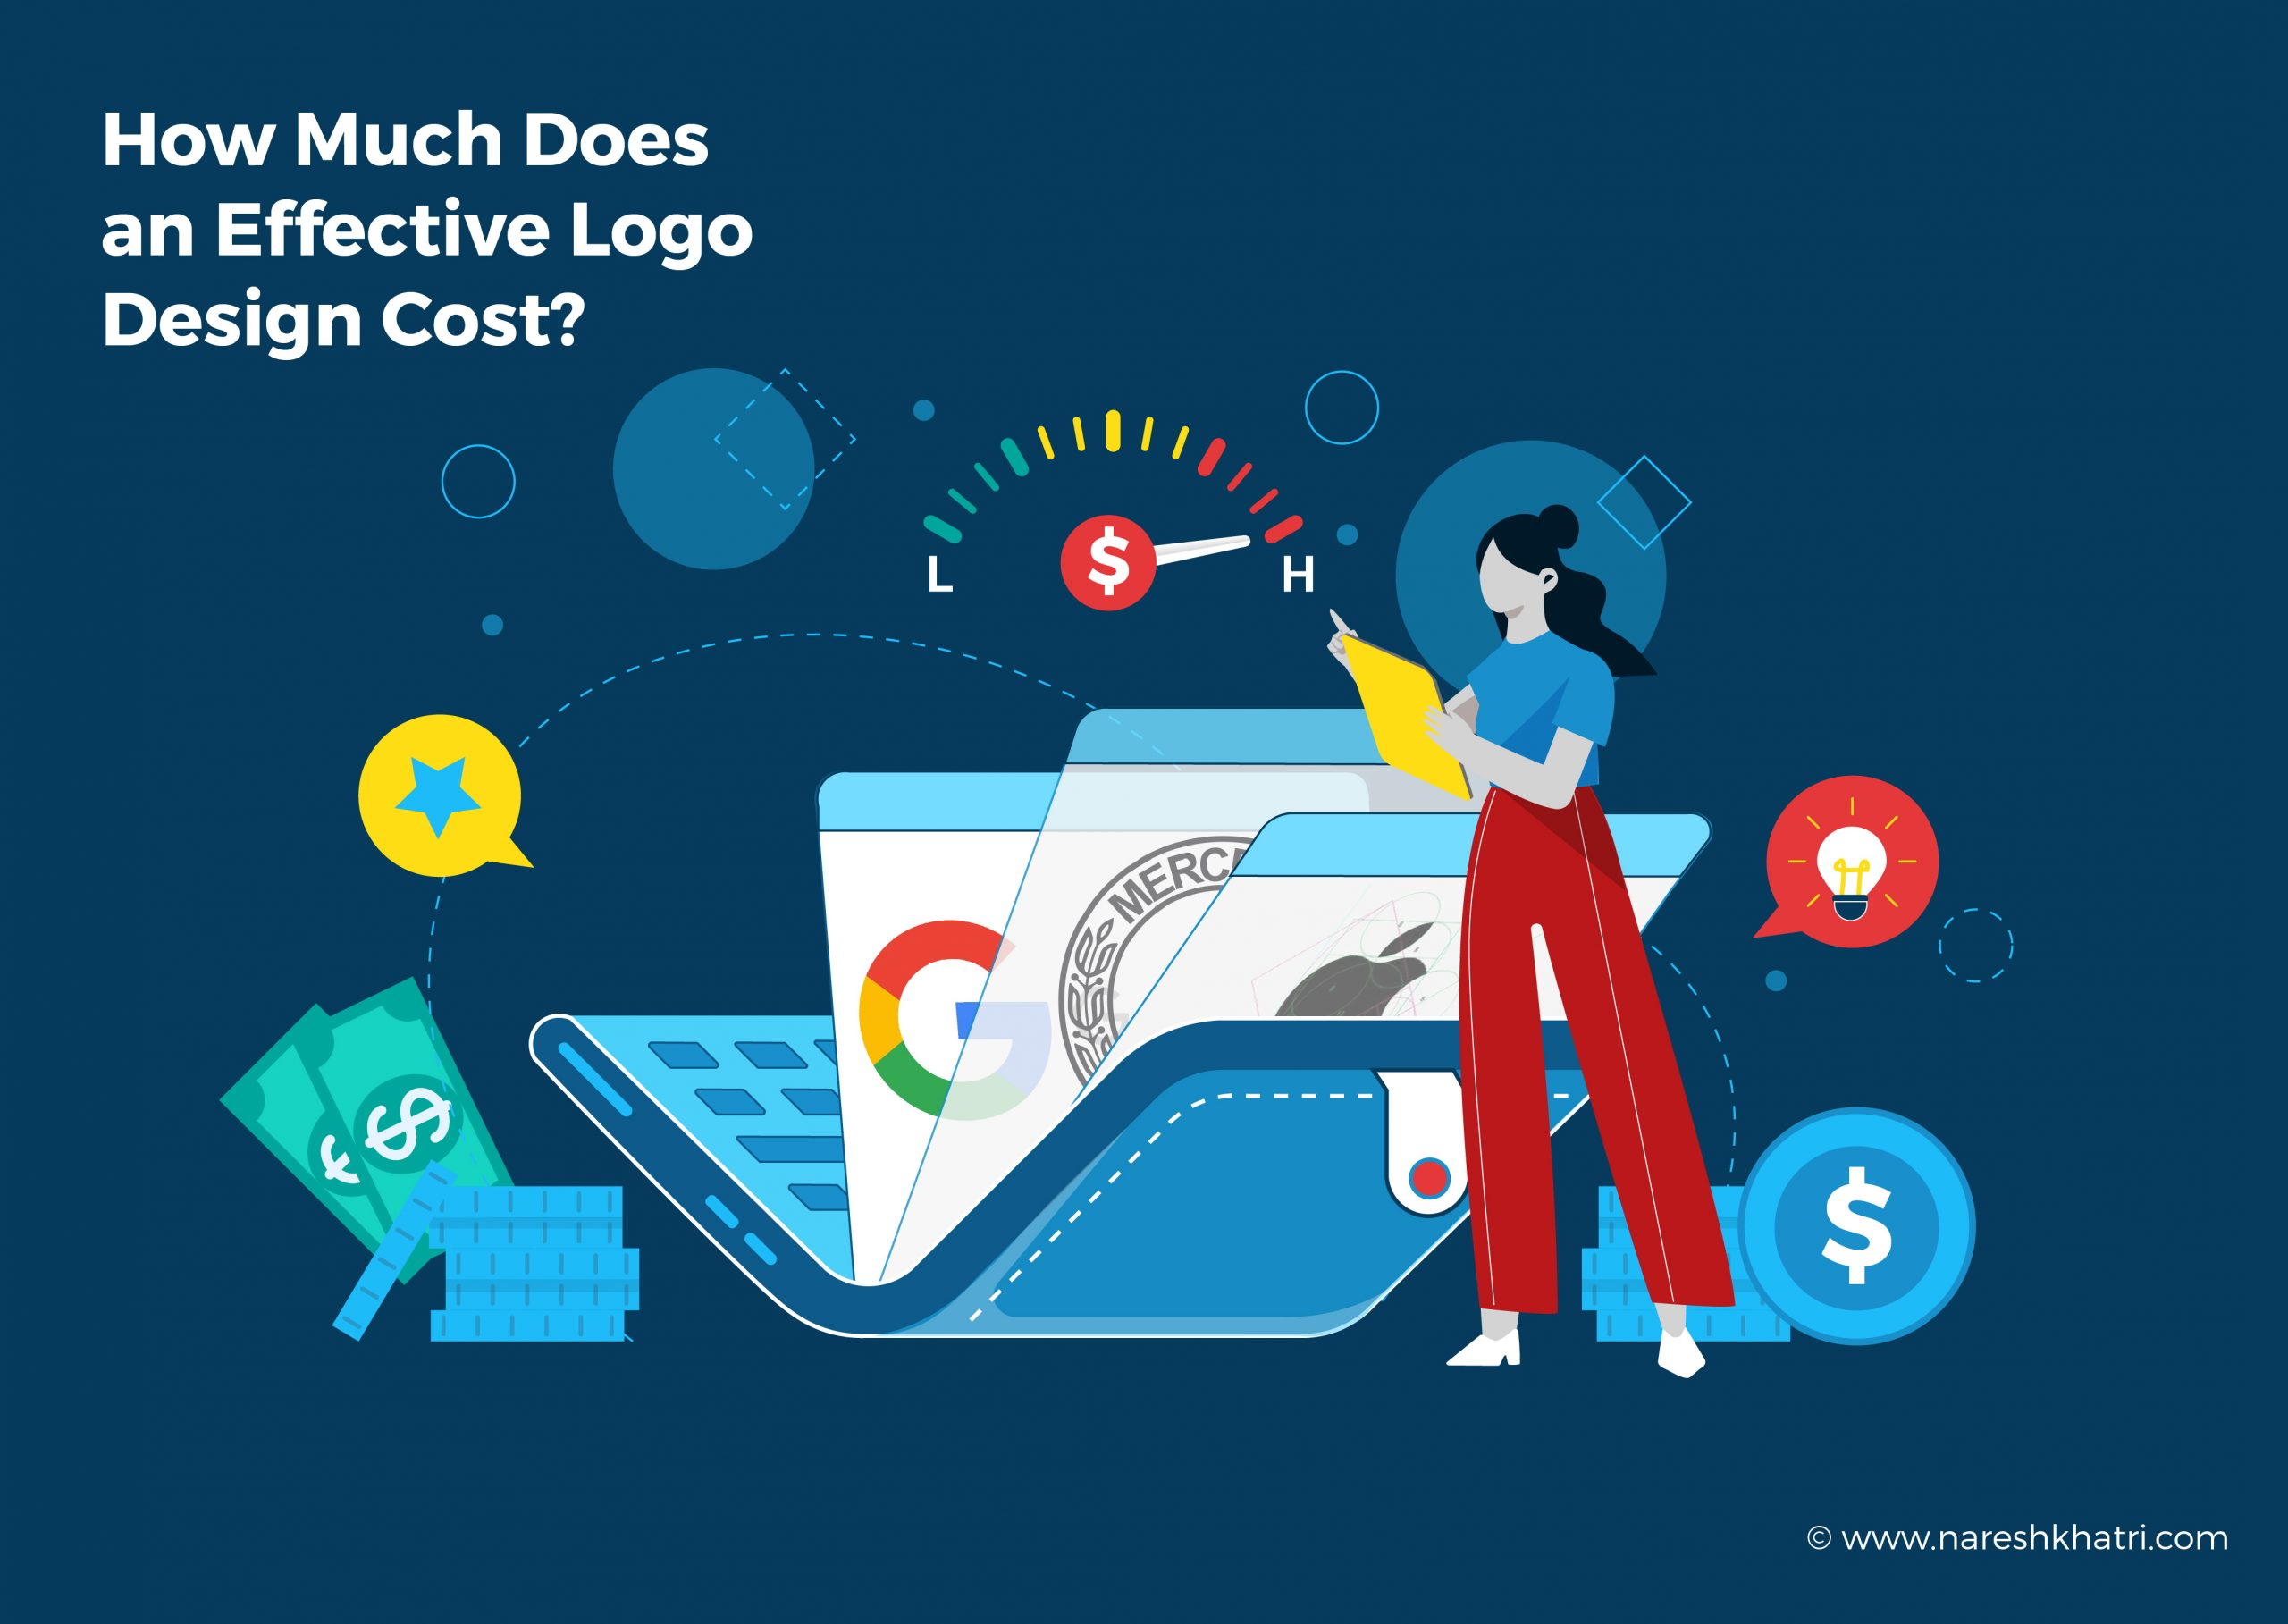 How Much Does an Effective Logo Design Cost?